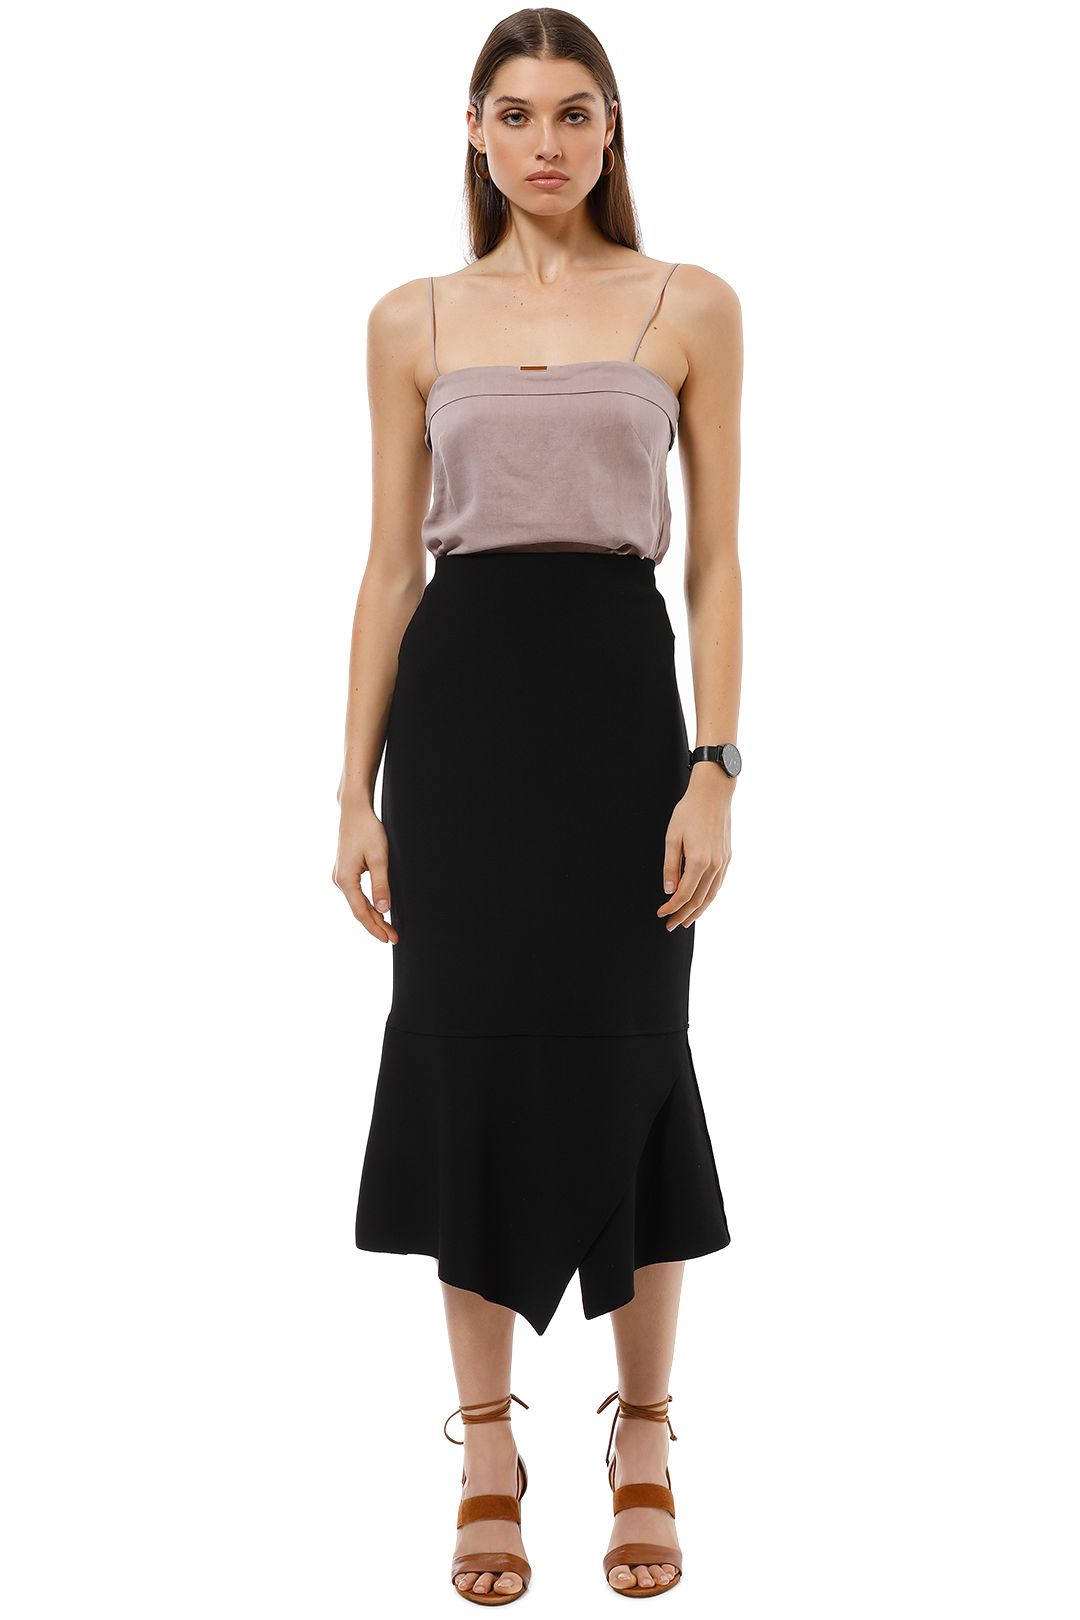 Ginger and Smart - Script Skirt - Black - Front